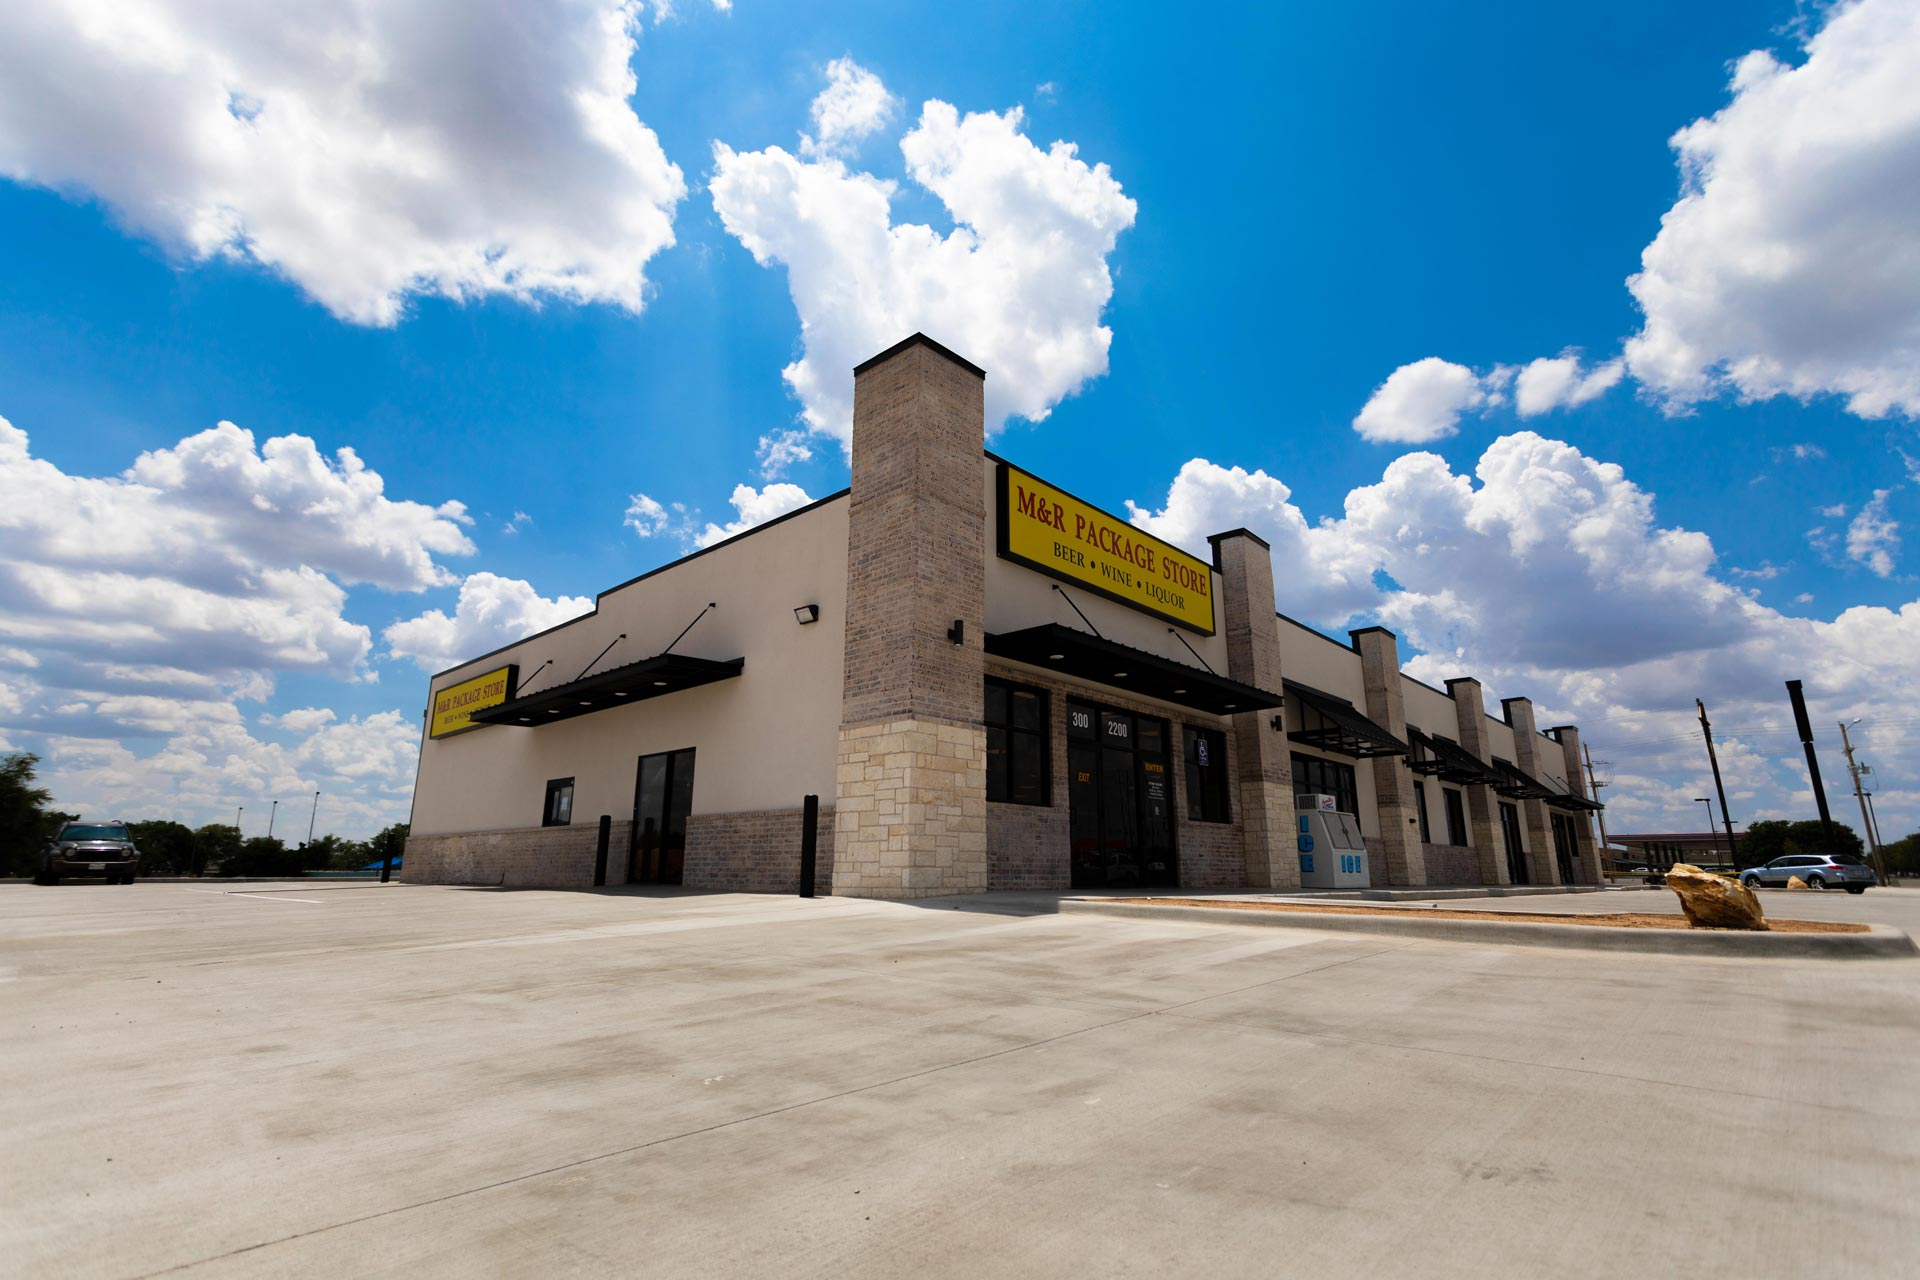 m_and_r_package_store_cole_stanley_builders_amarillo_commercial_building